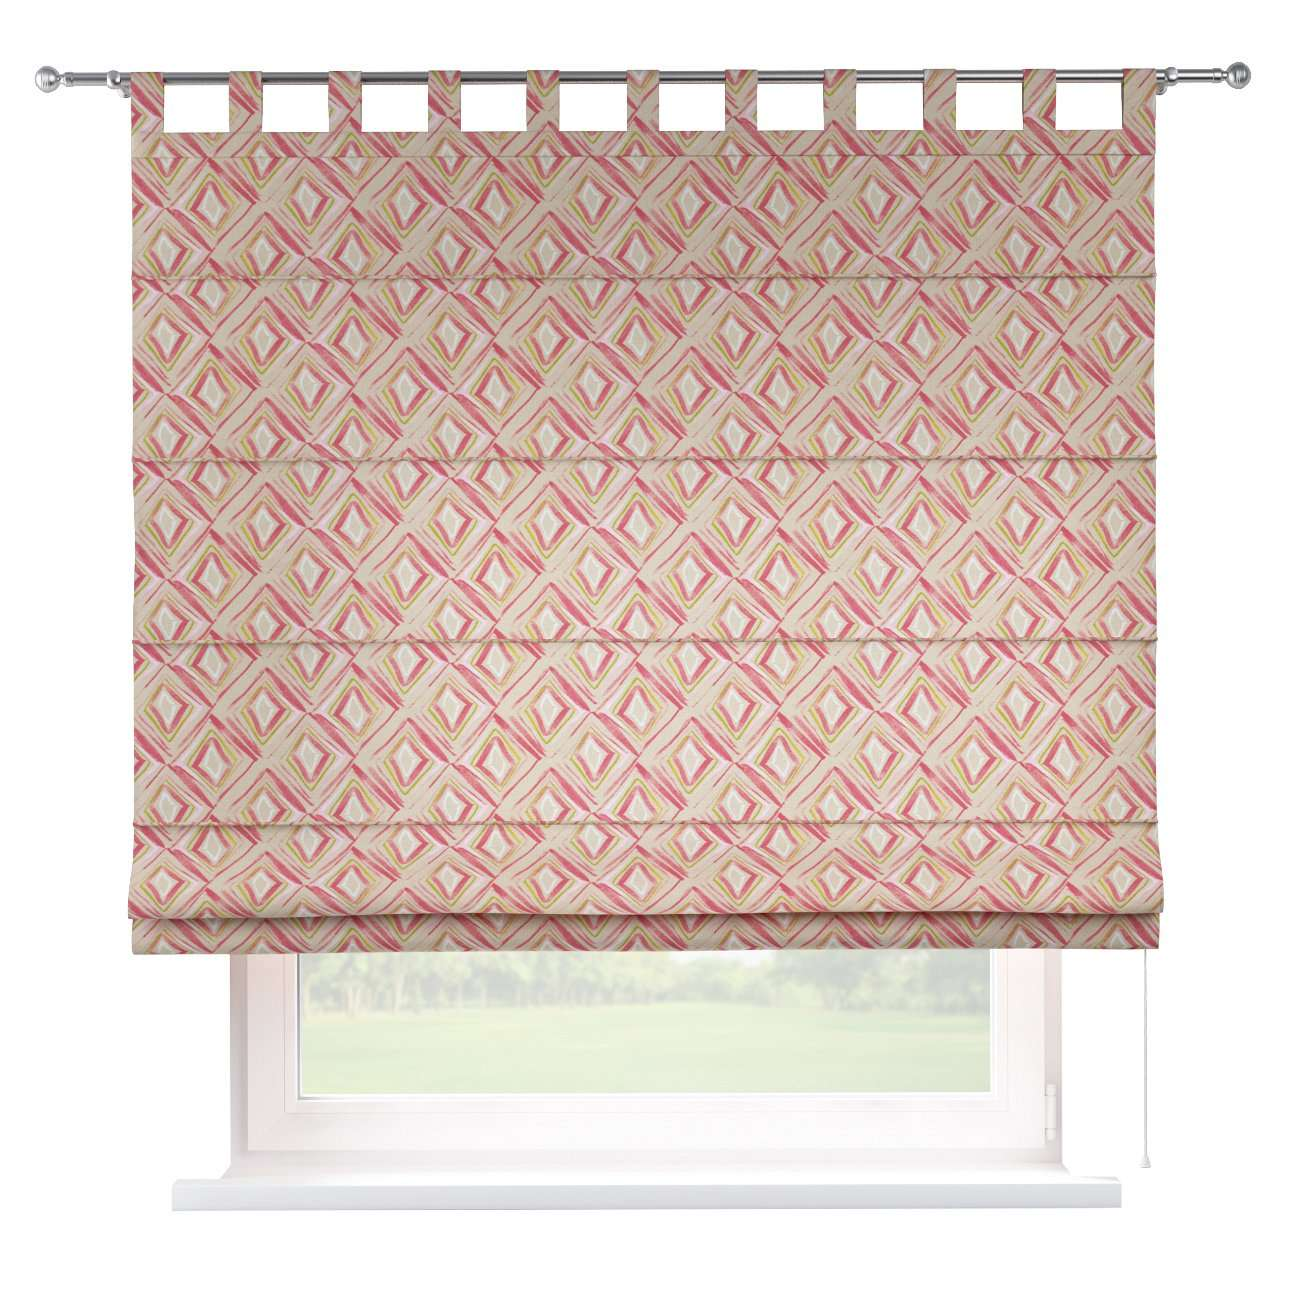 Verona tab top roman blind in collection Londres, fabric: 140-45